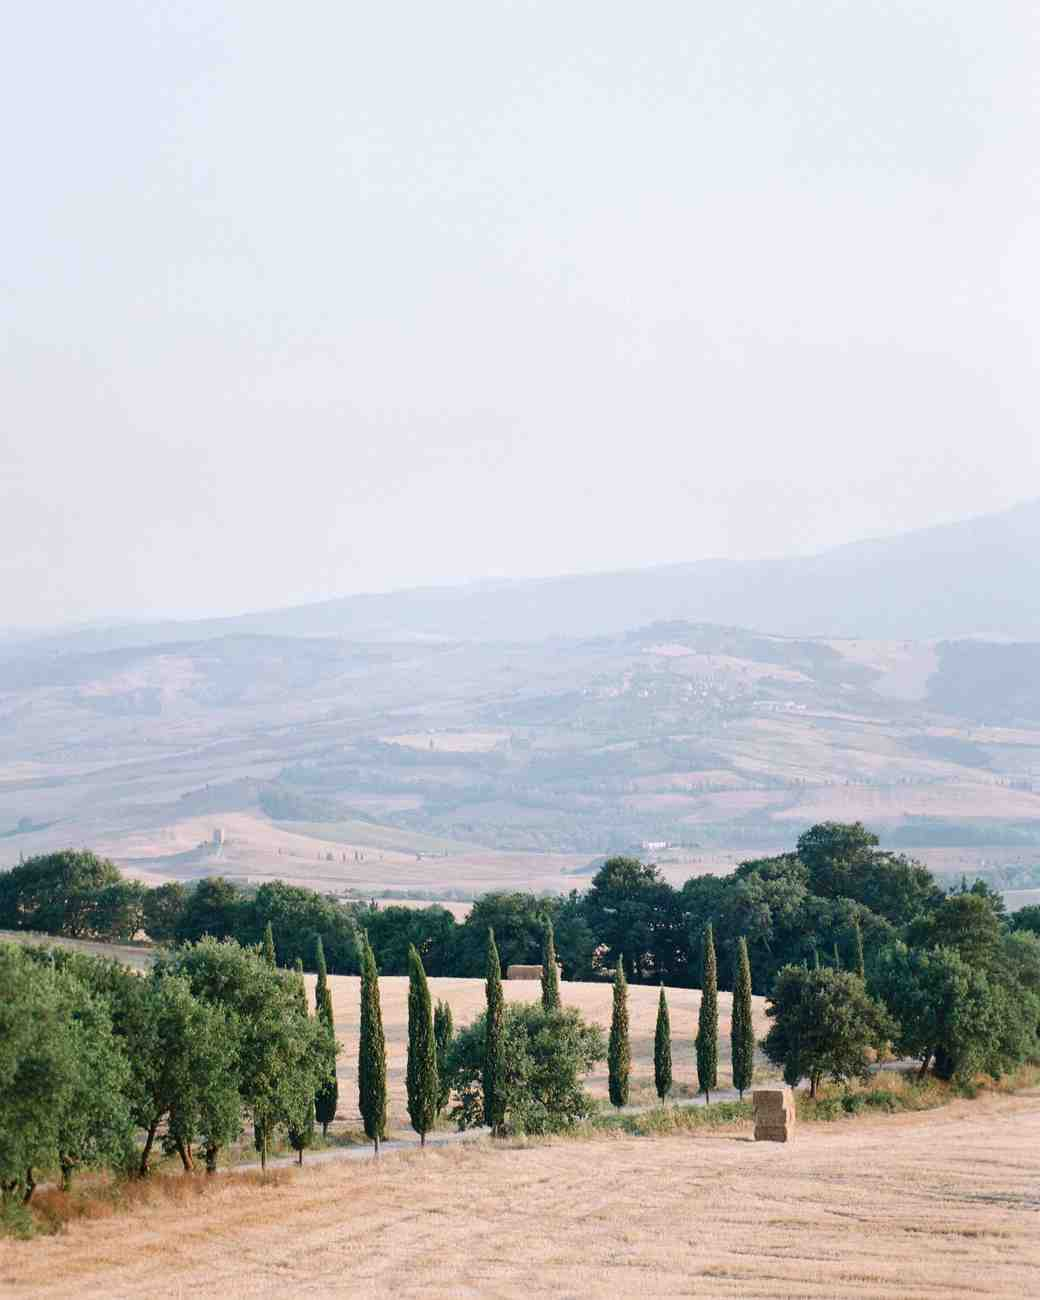 dennis-bryan-wedding-italy-location-hills-cypress-trees-019-0038-s112633.jpg